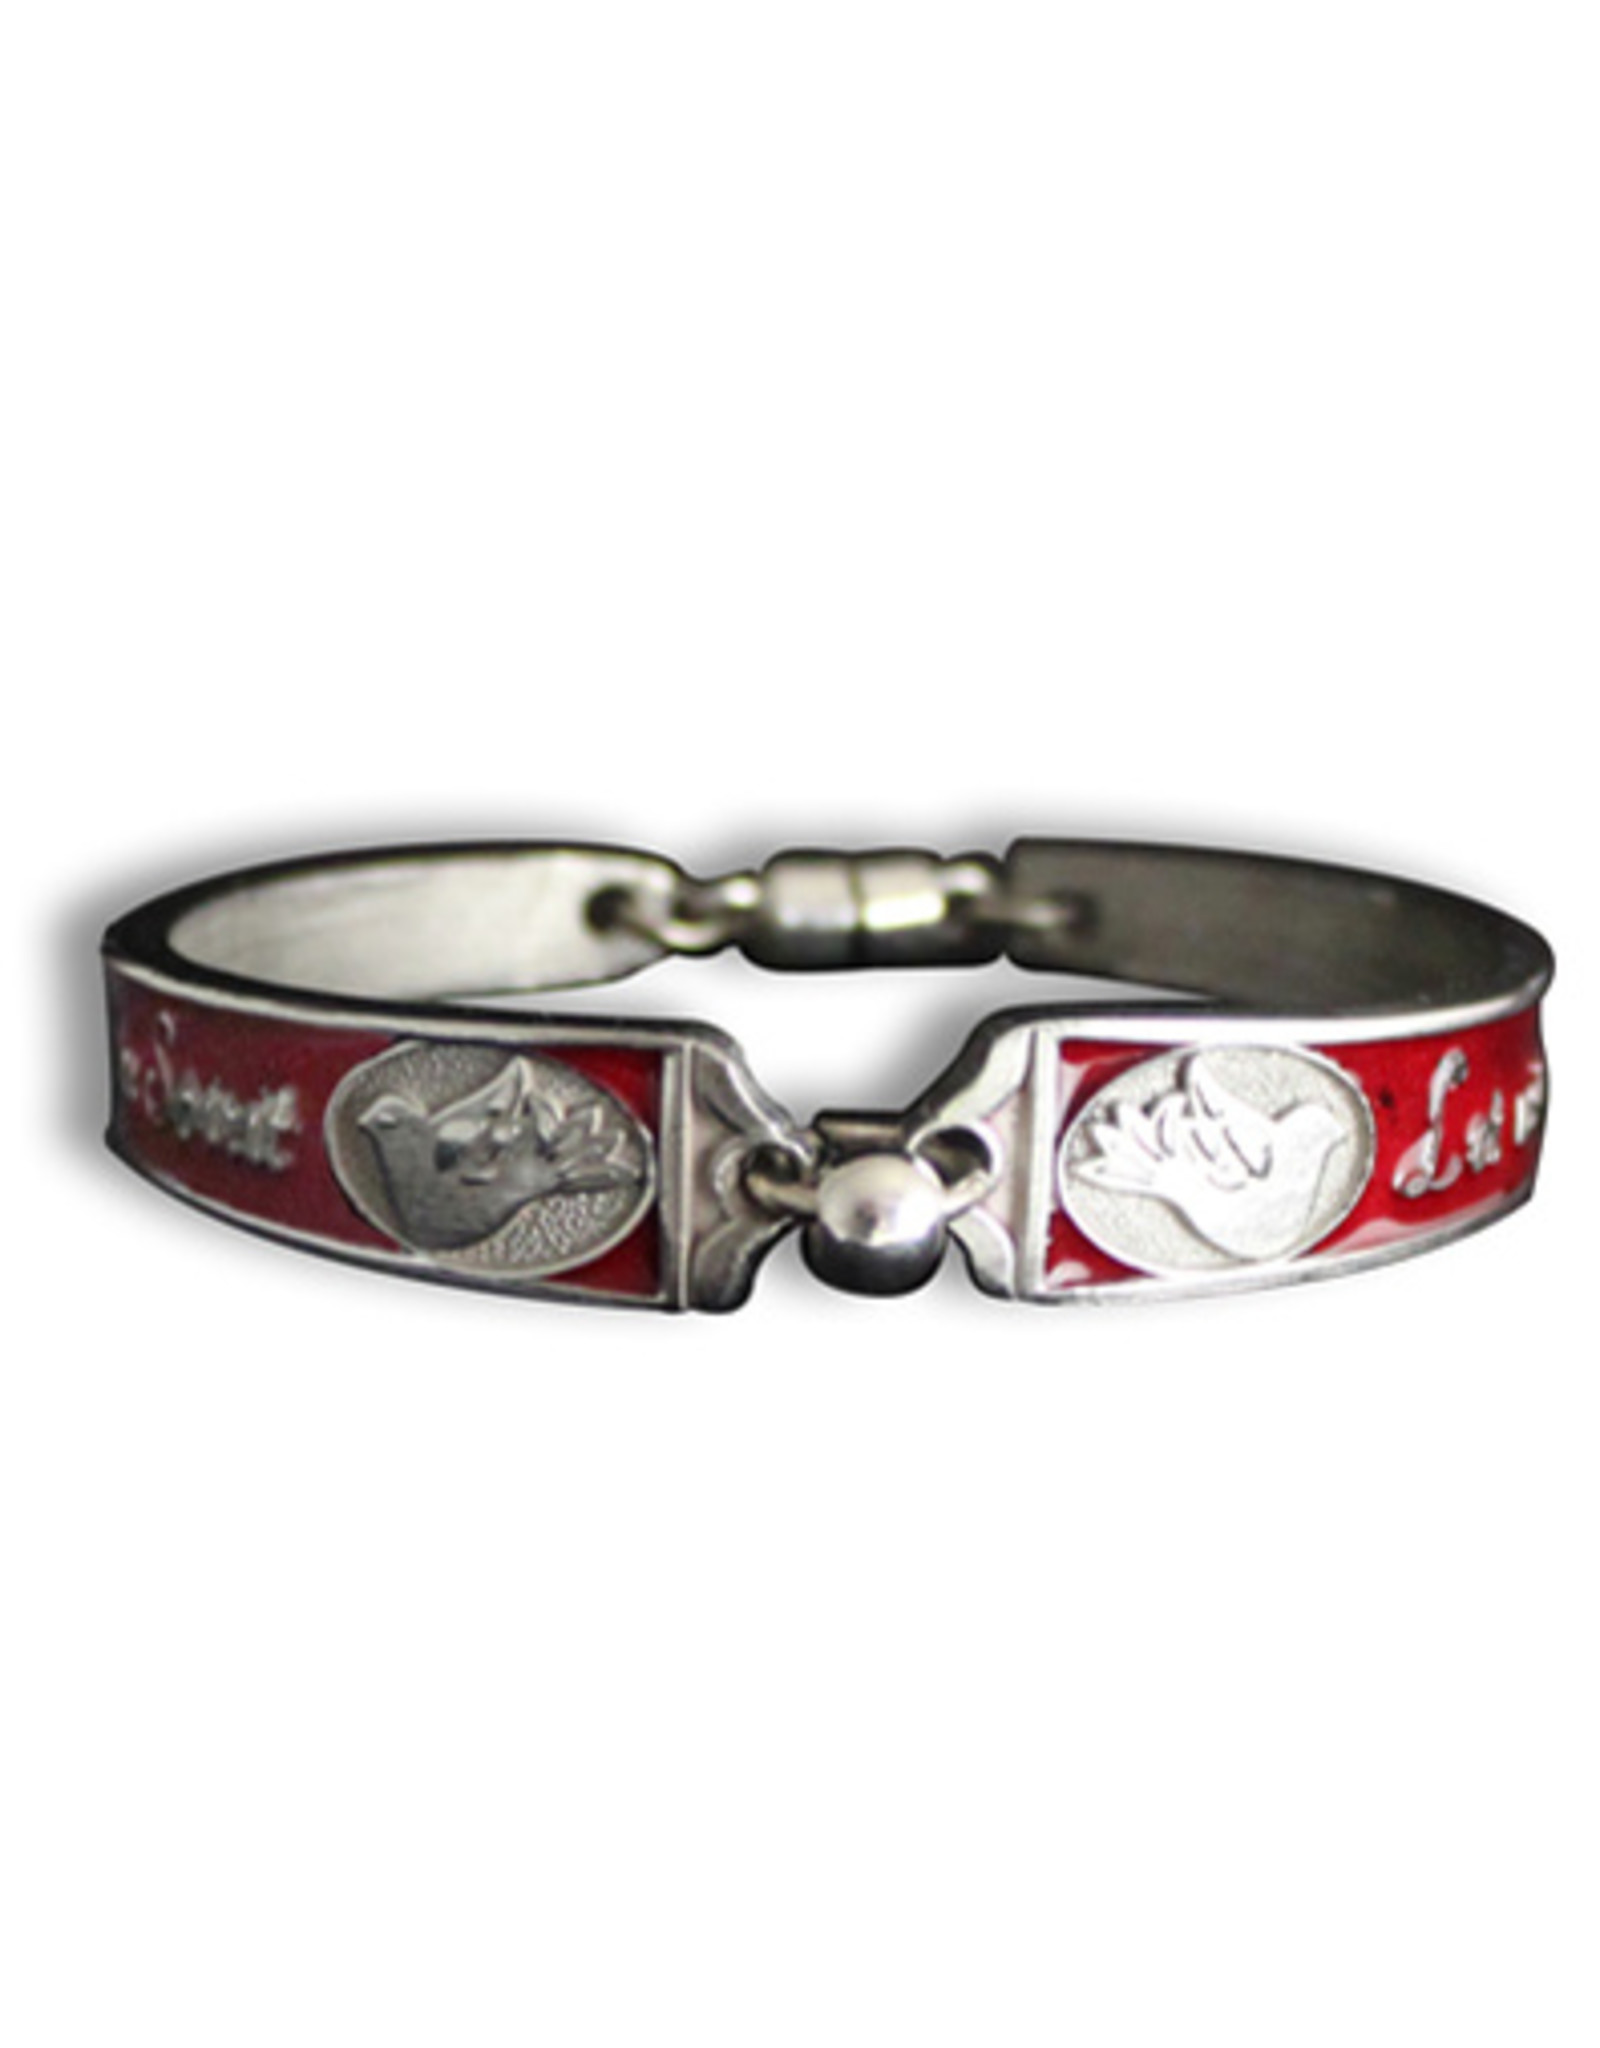 Confirmation Bracelet Silver Plated/Red Magnetic Closure